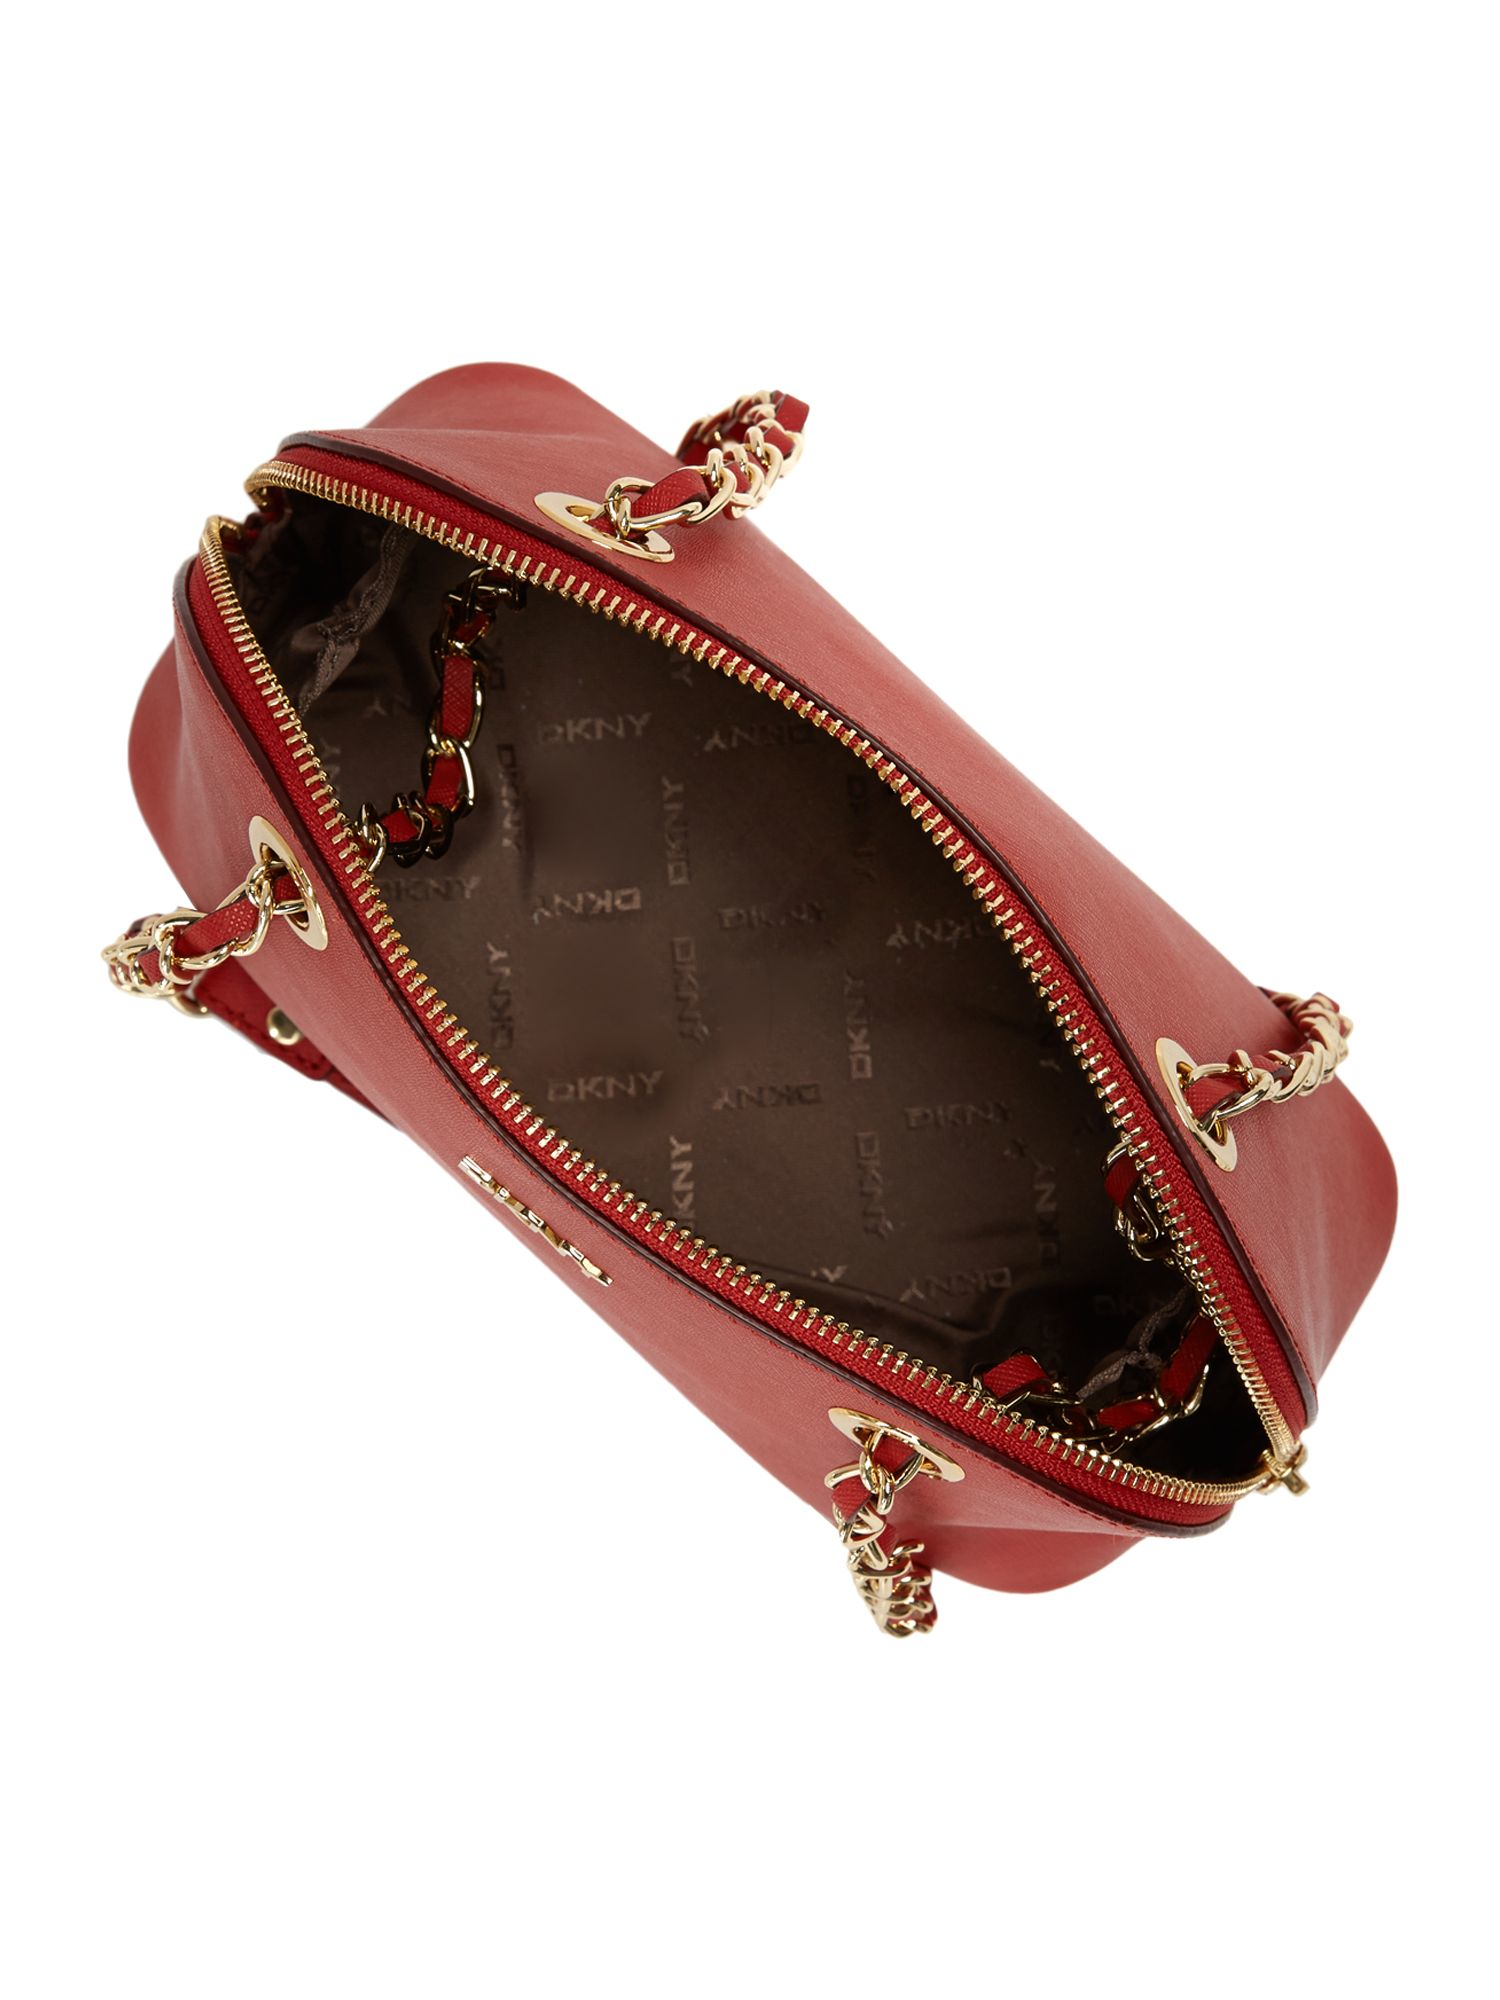 DKNY Leather Saffiano Red Small Rounded Cross Body Bag